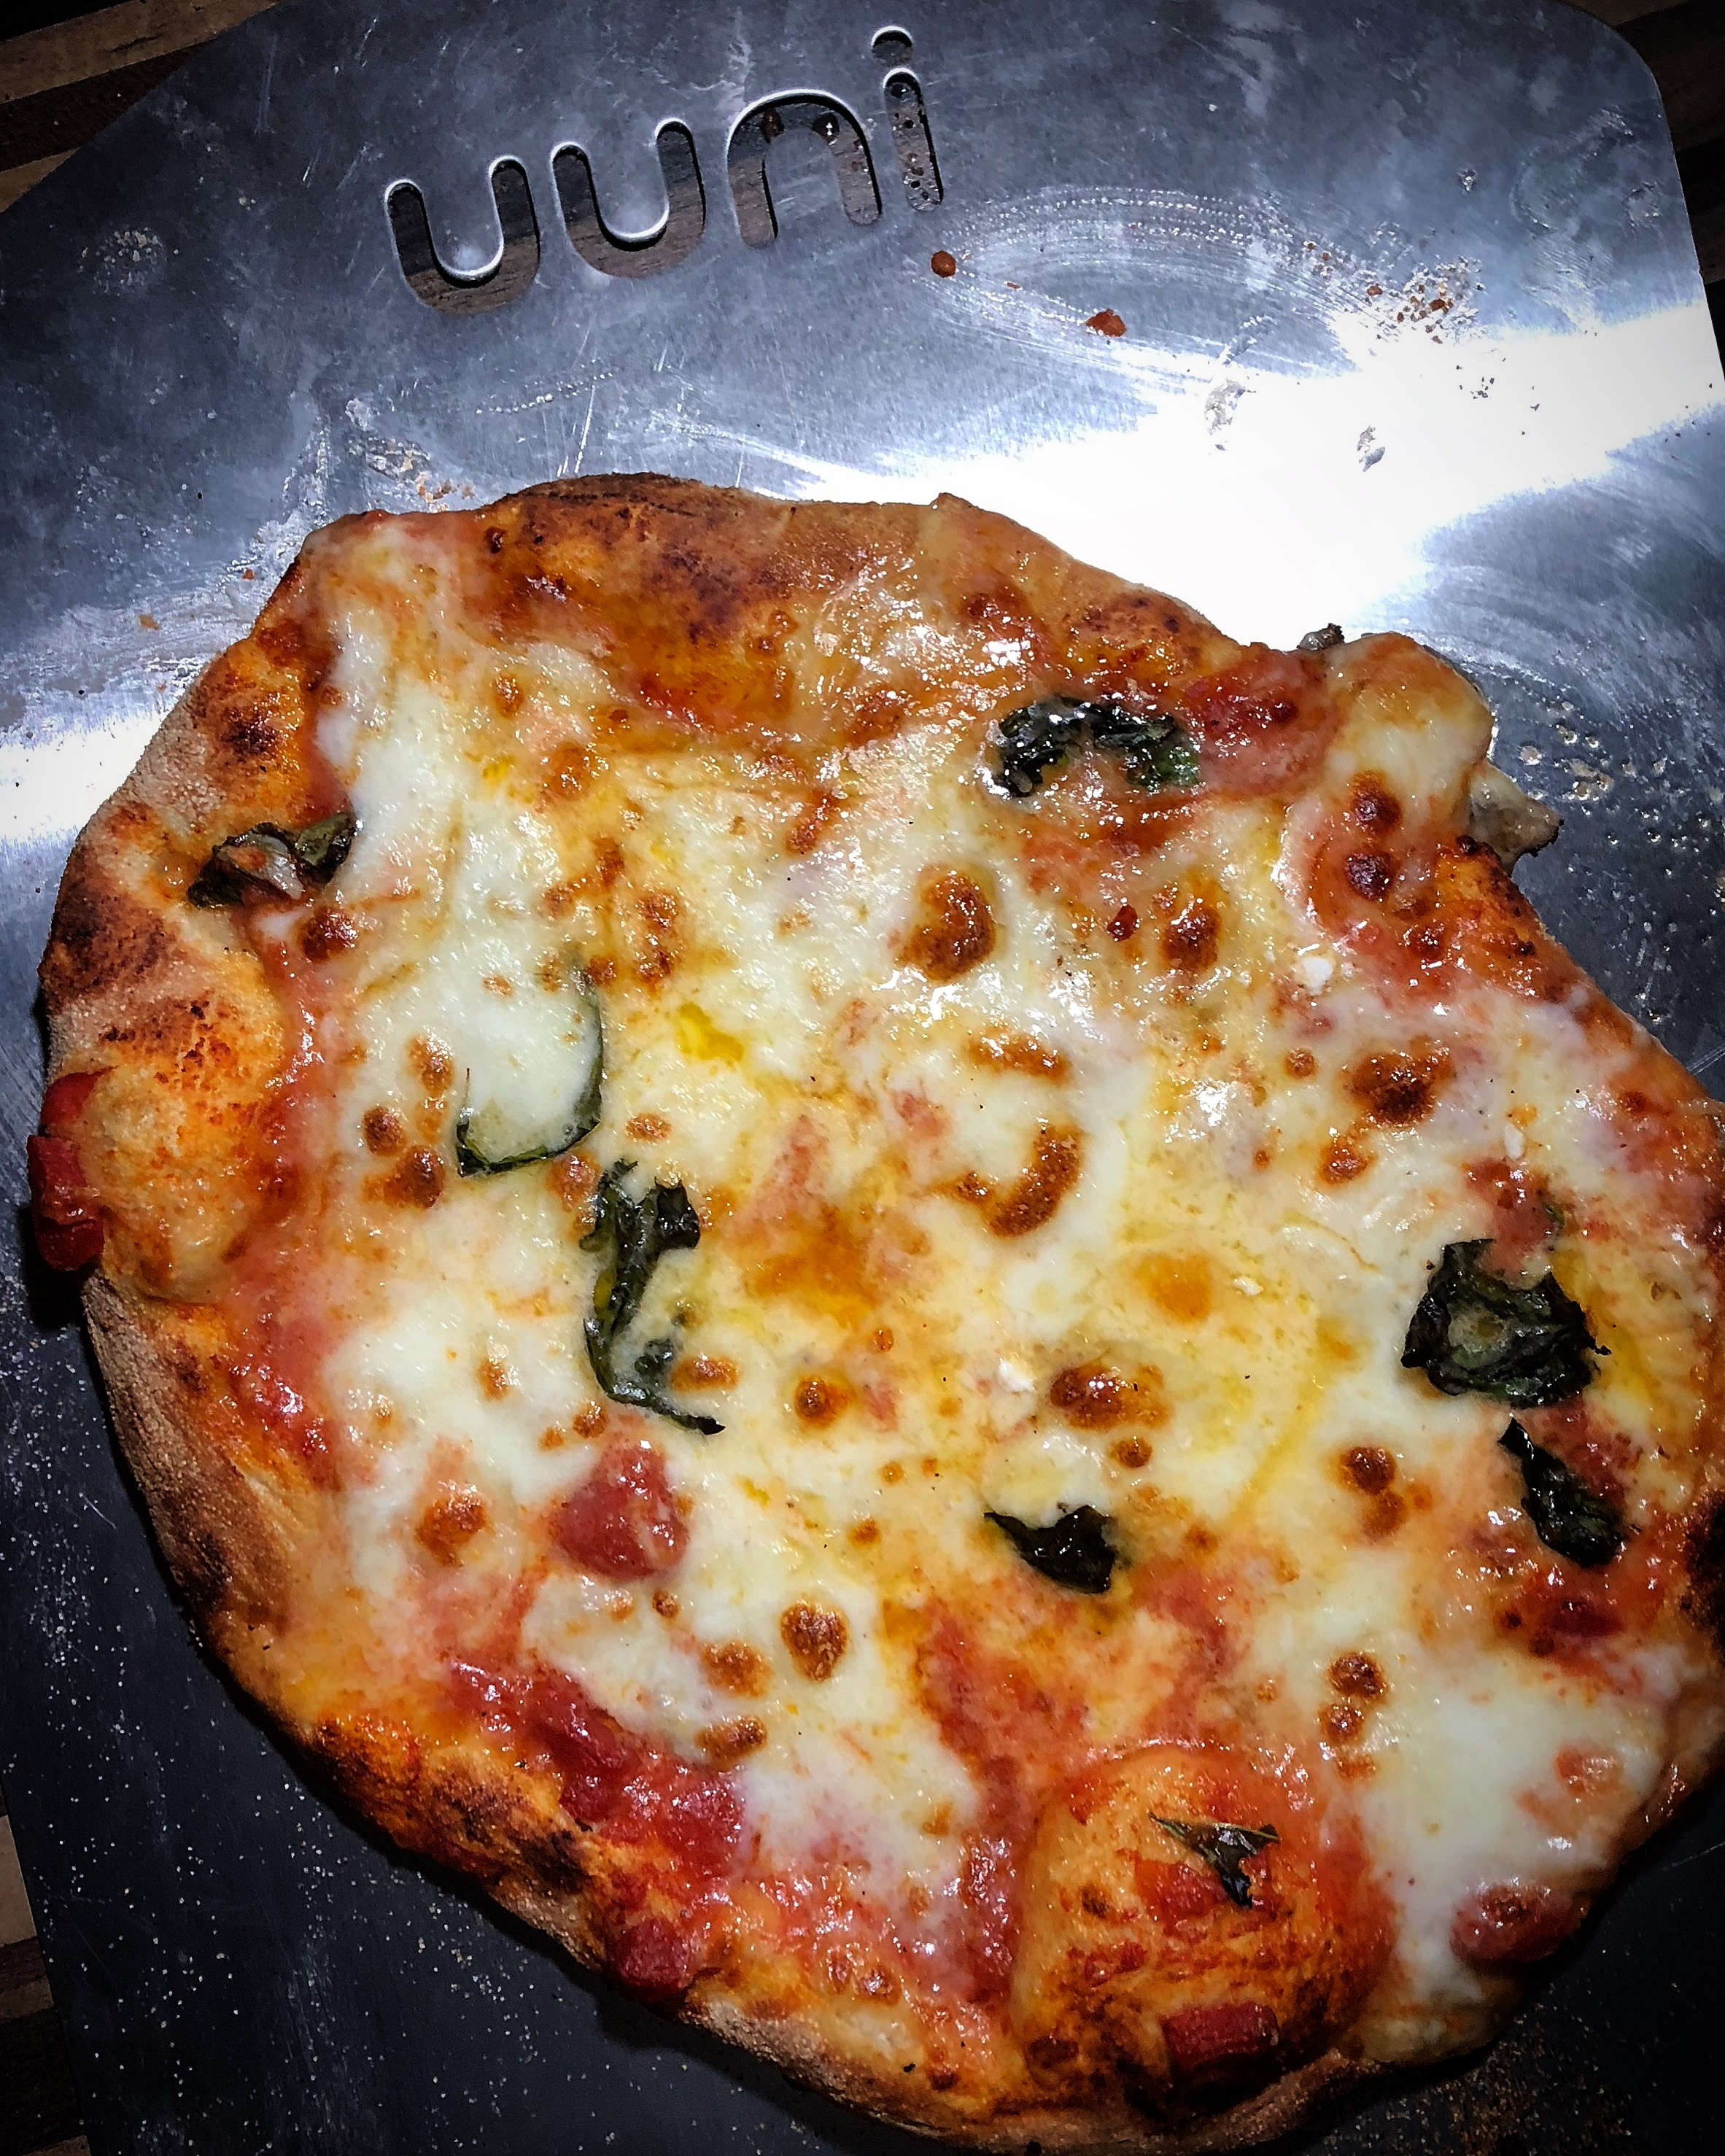 Cooked four cheese pizza.